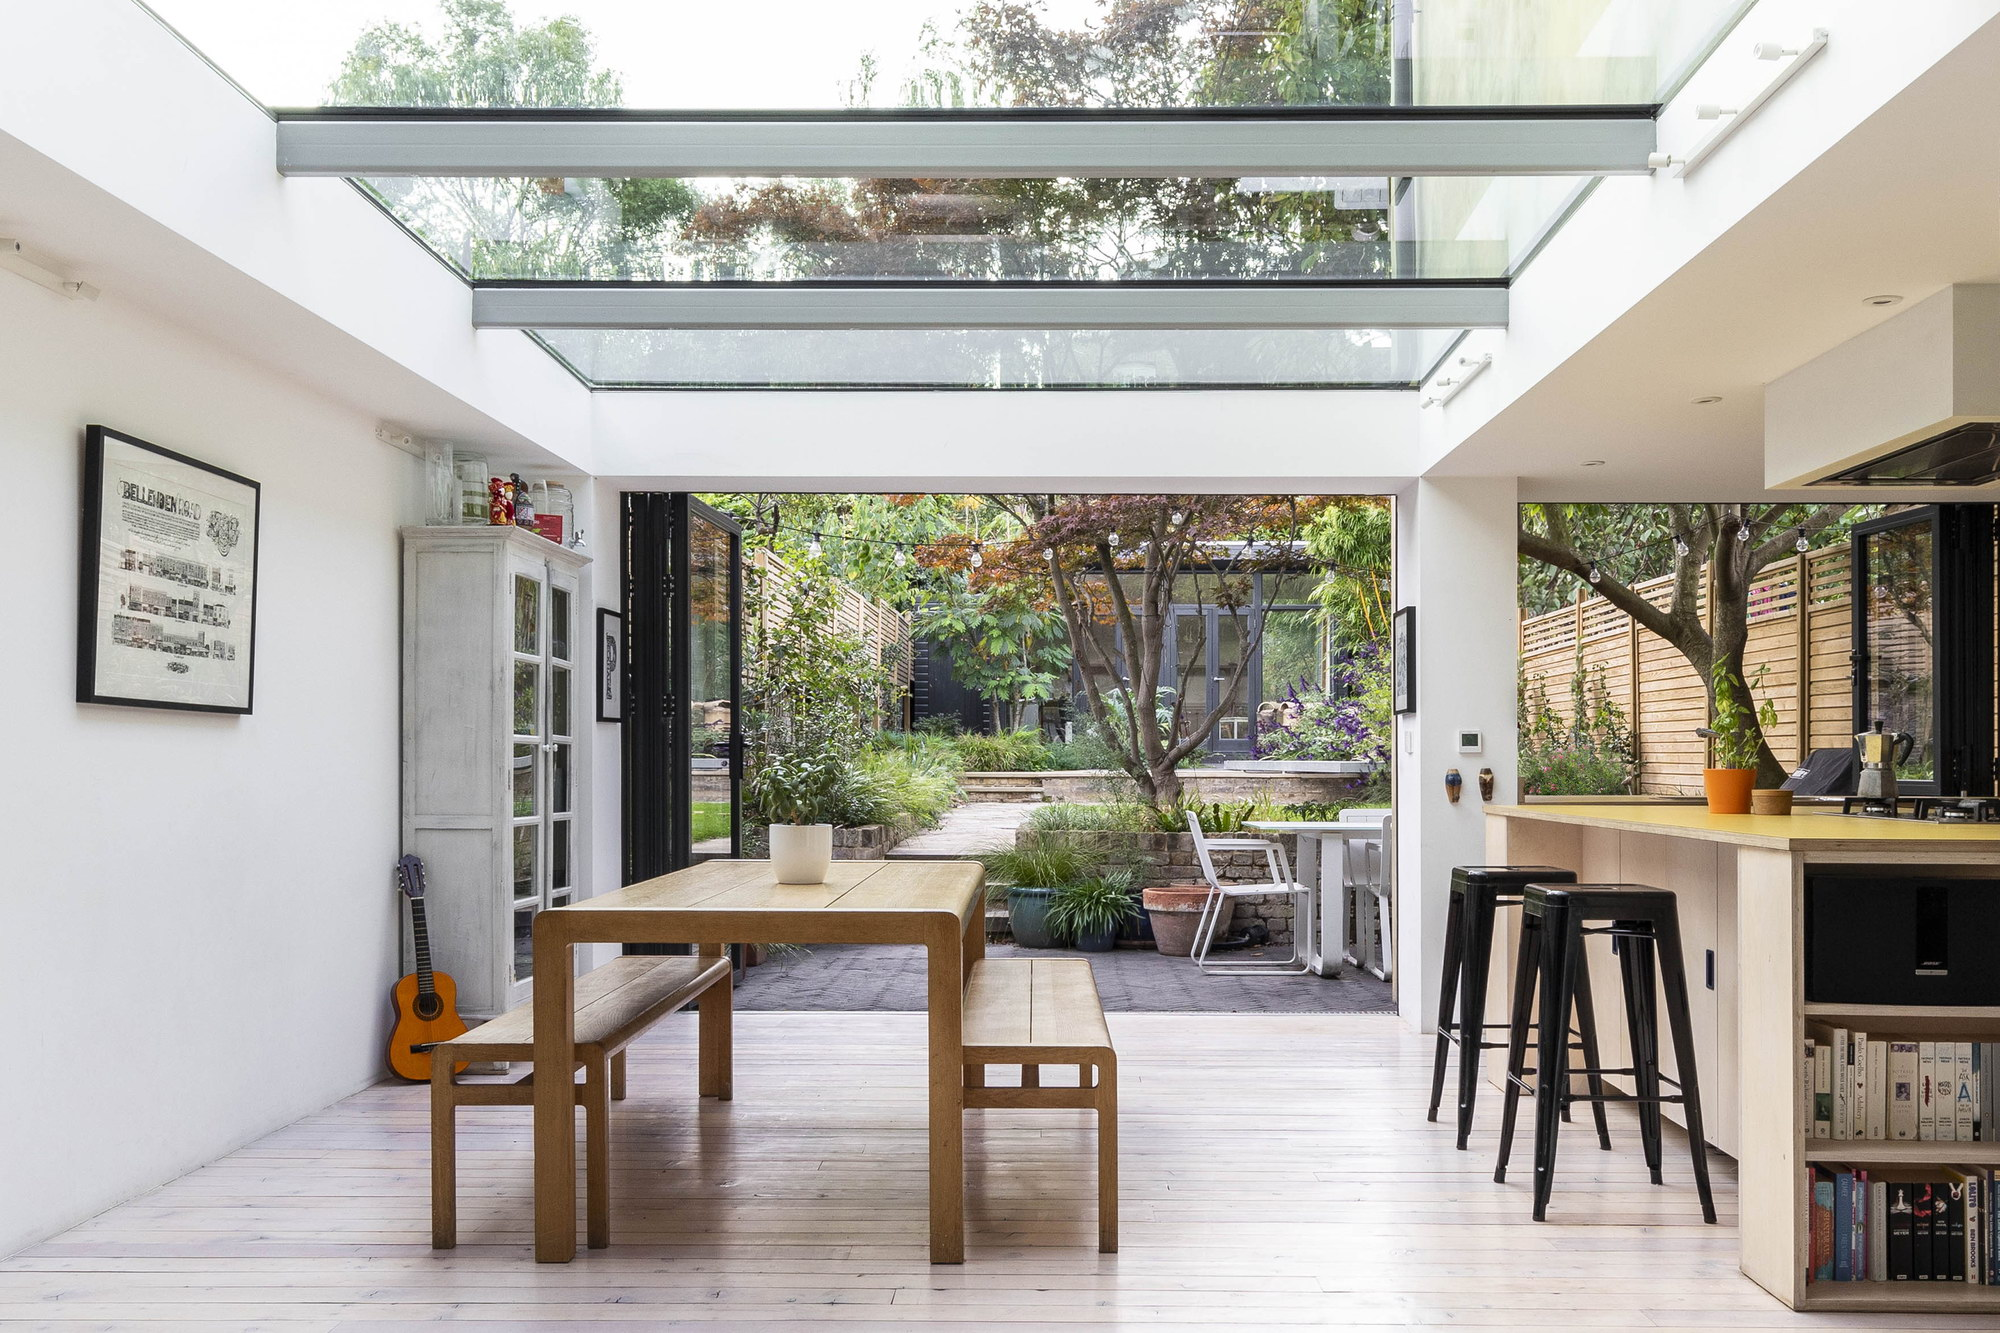 The Coach House   Terraced House Renovation by Studio 30 Architects